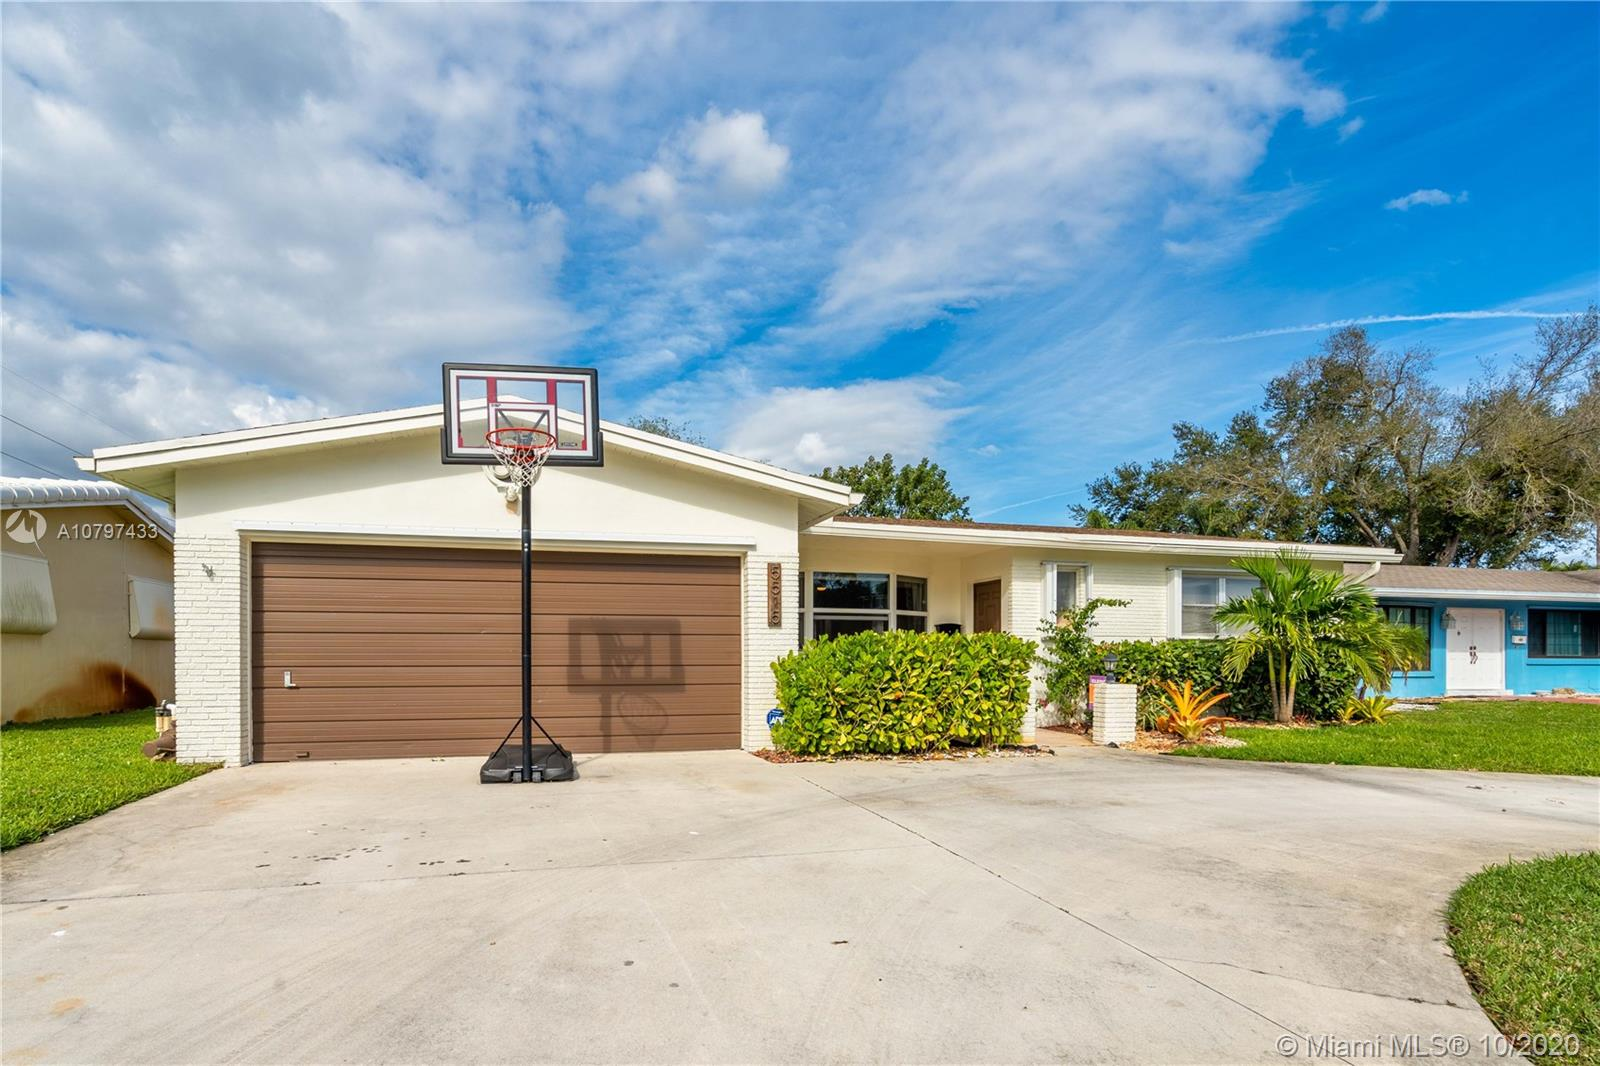 5515  Mckinley St  For Sale A10797433, FL